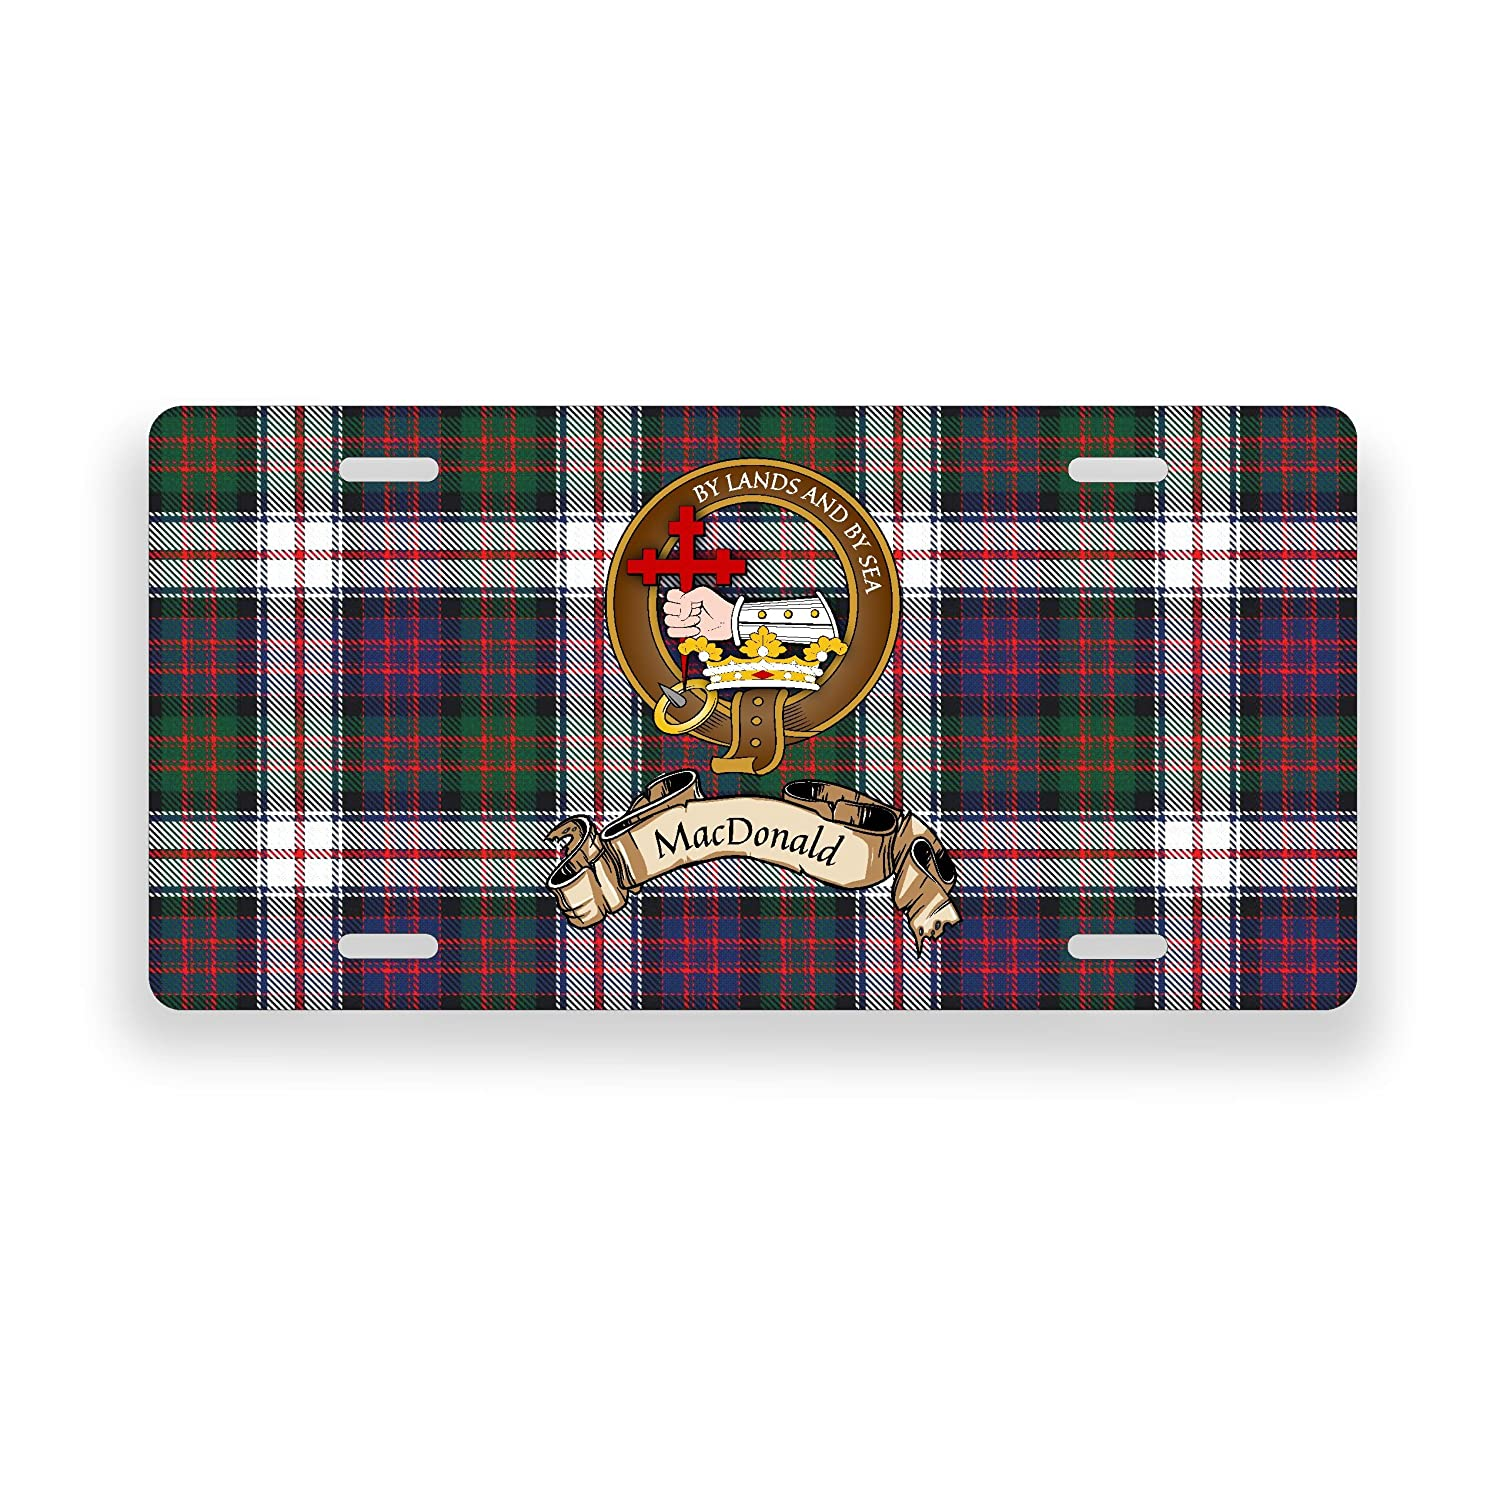 MacDonald Scotland Clan Dress Tartan Novelty Auto Plate